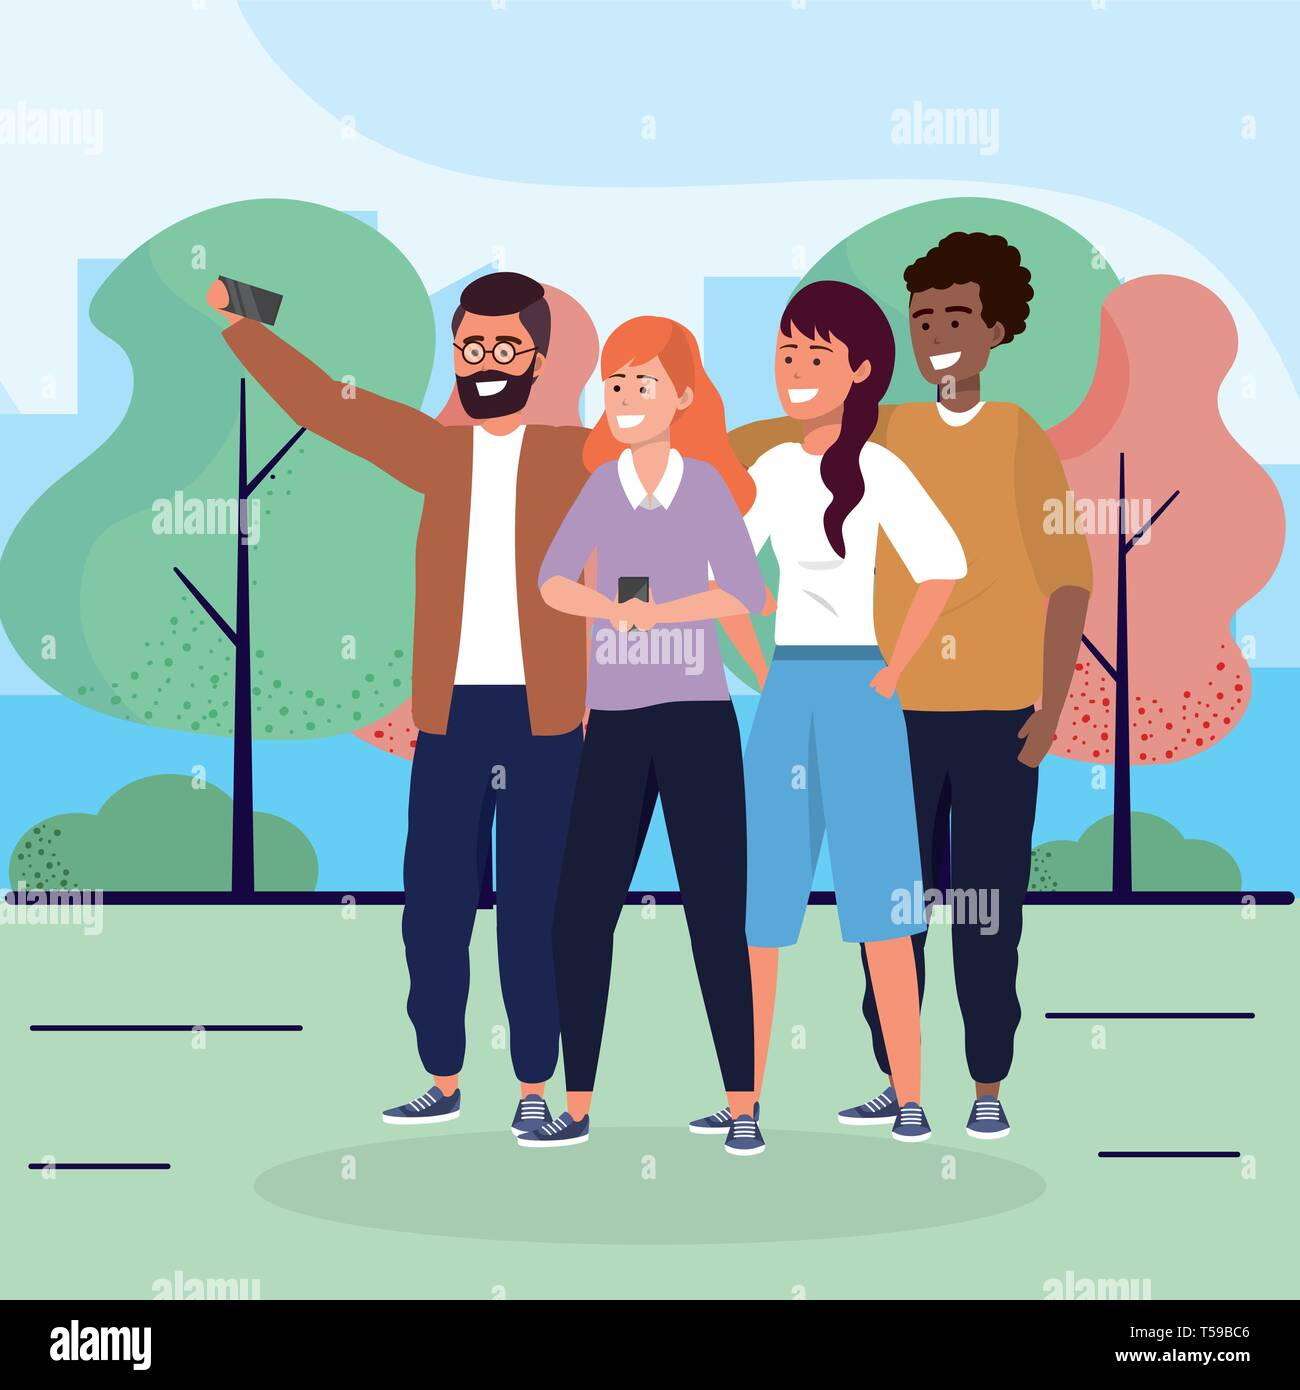 women and men friends with smartphone and trees vector illustration Stock Vector